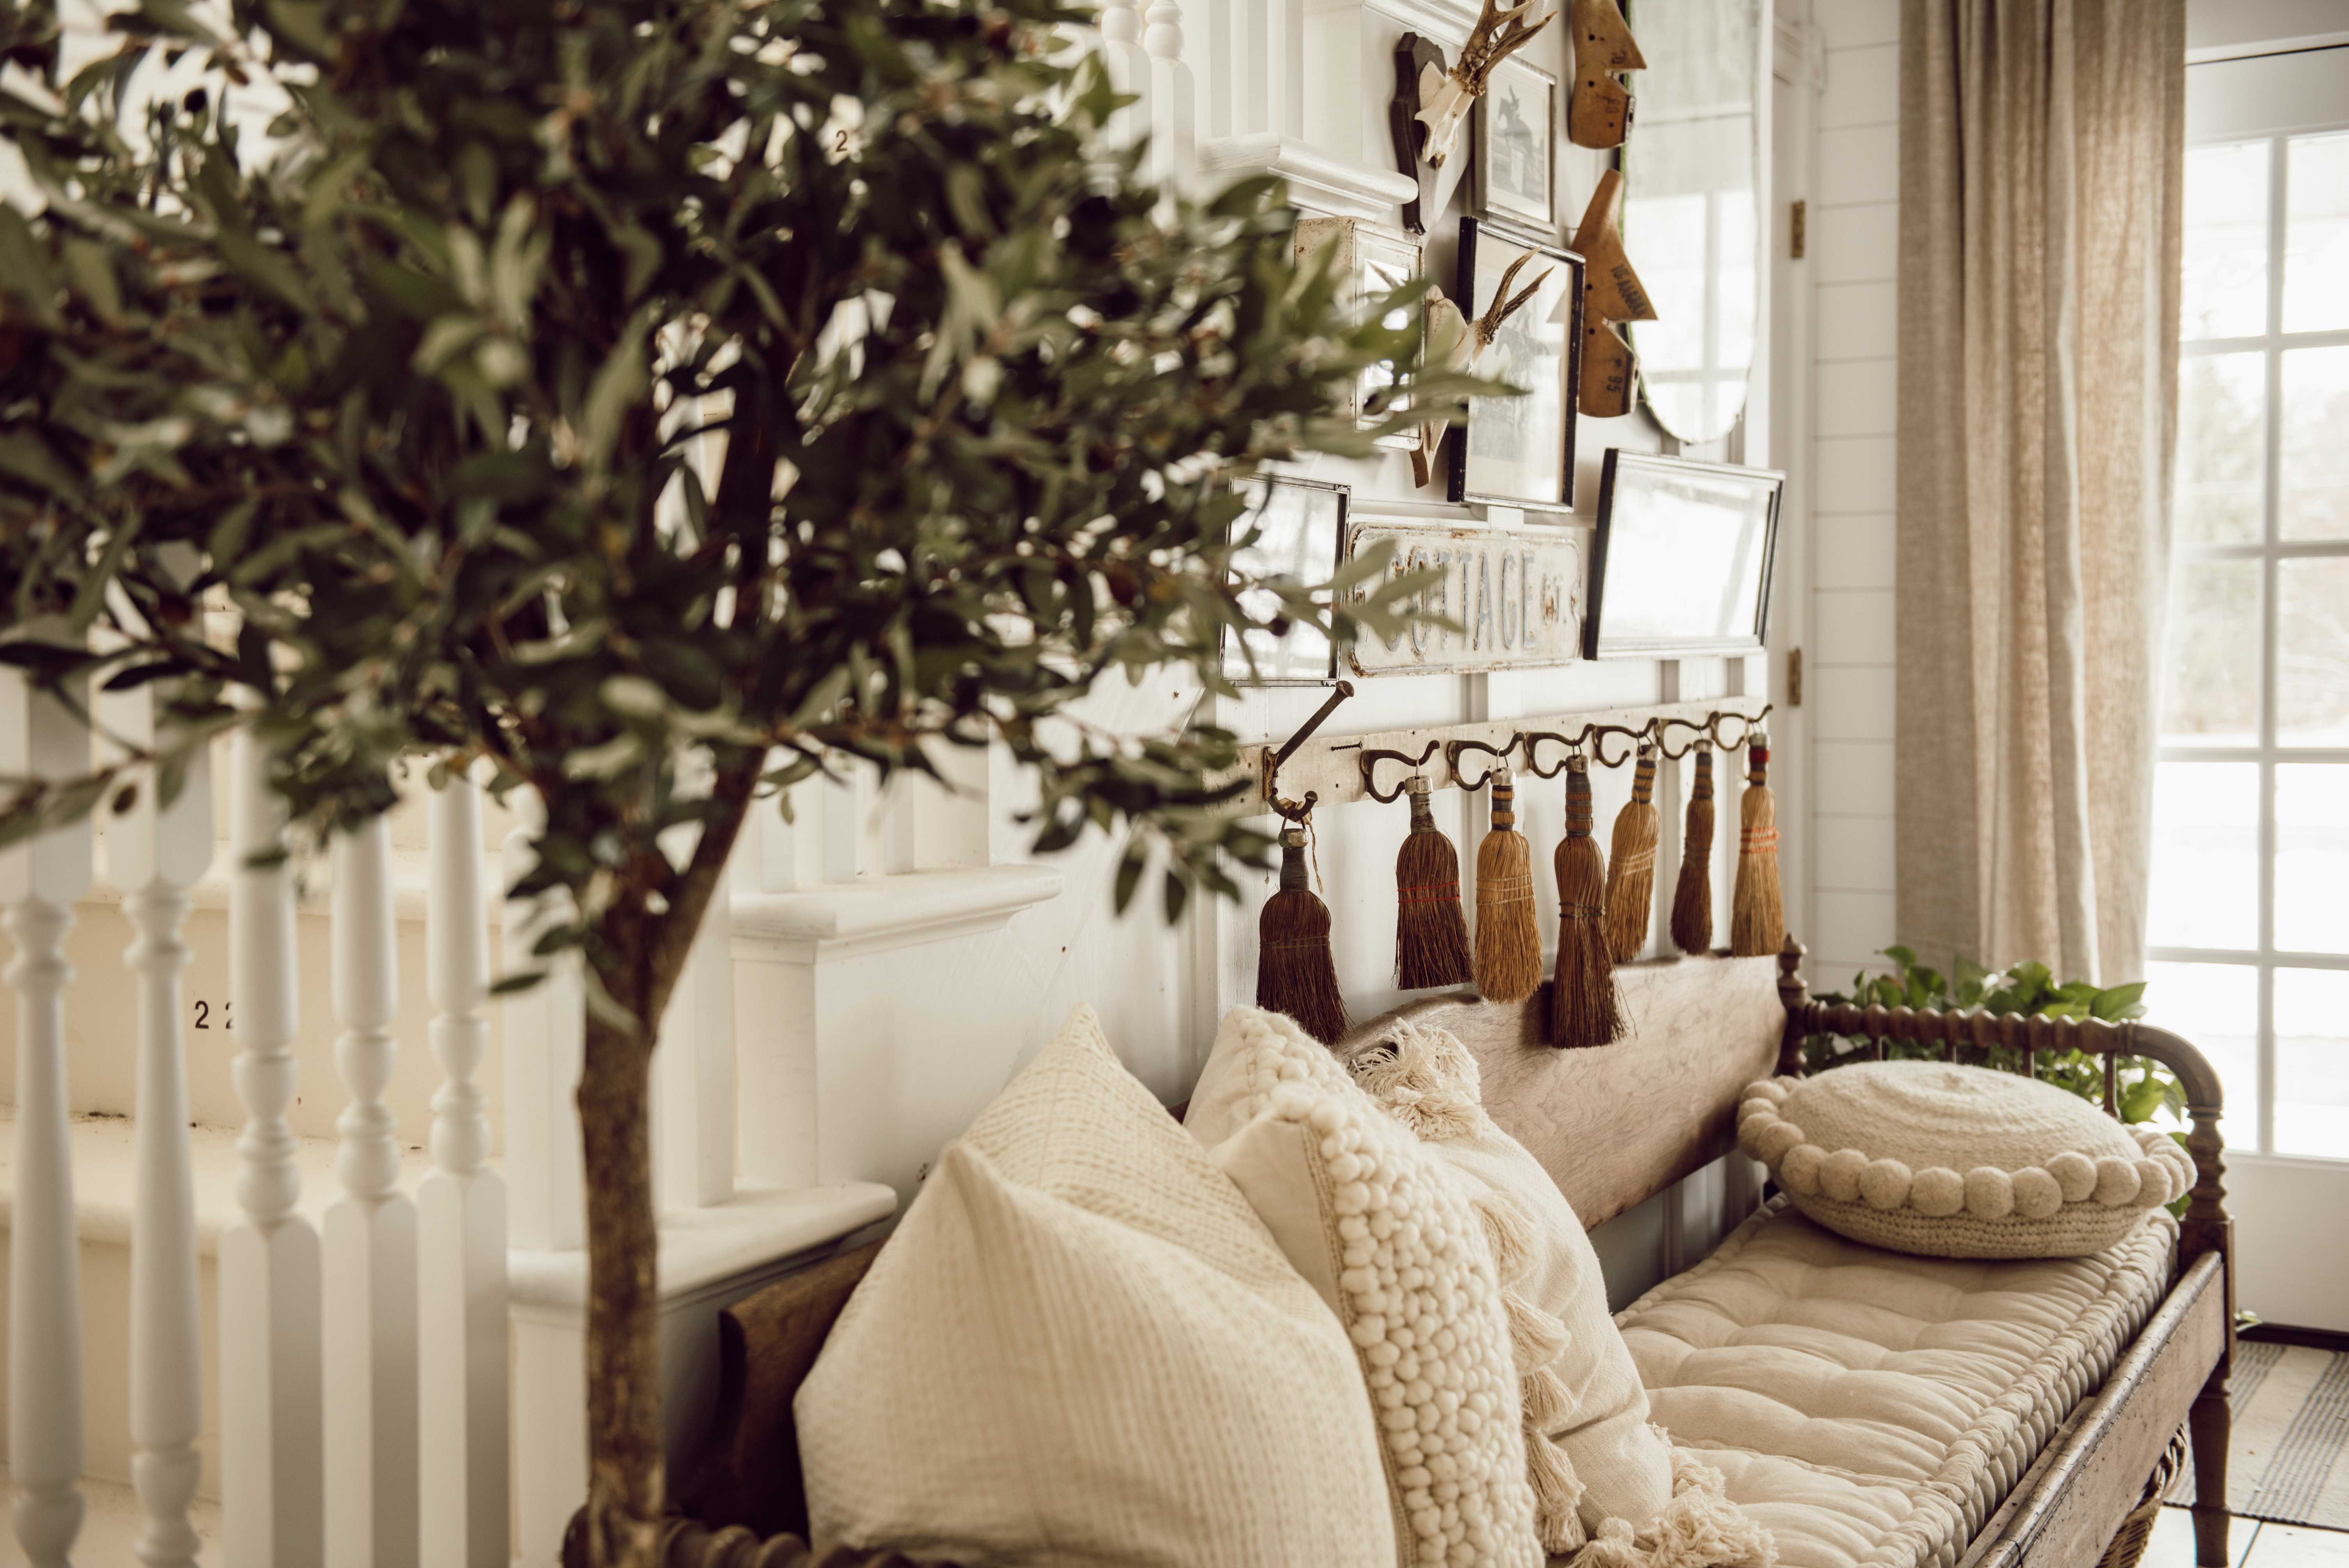 1 Easy Way To Add A Rustic Touch To Your Home Decor